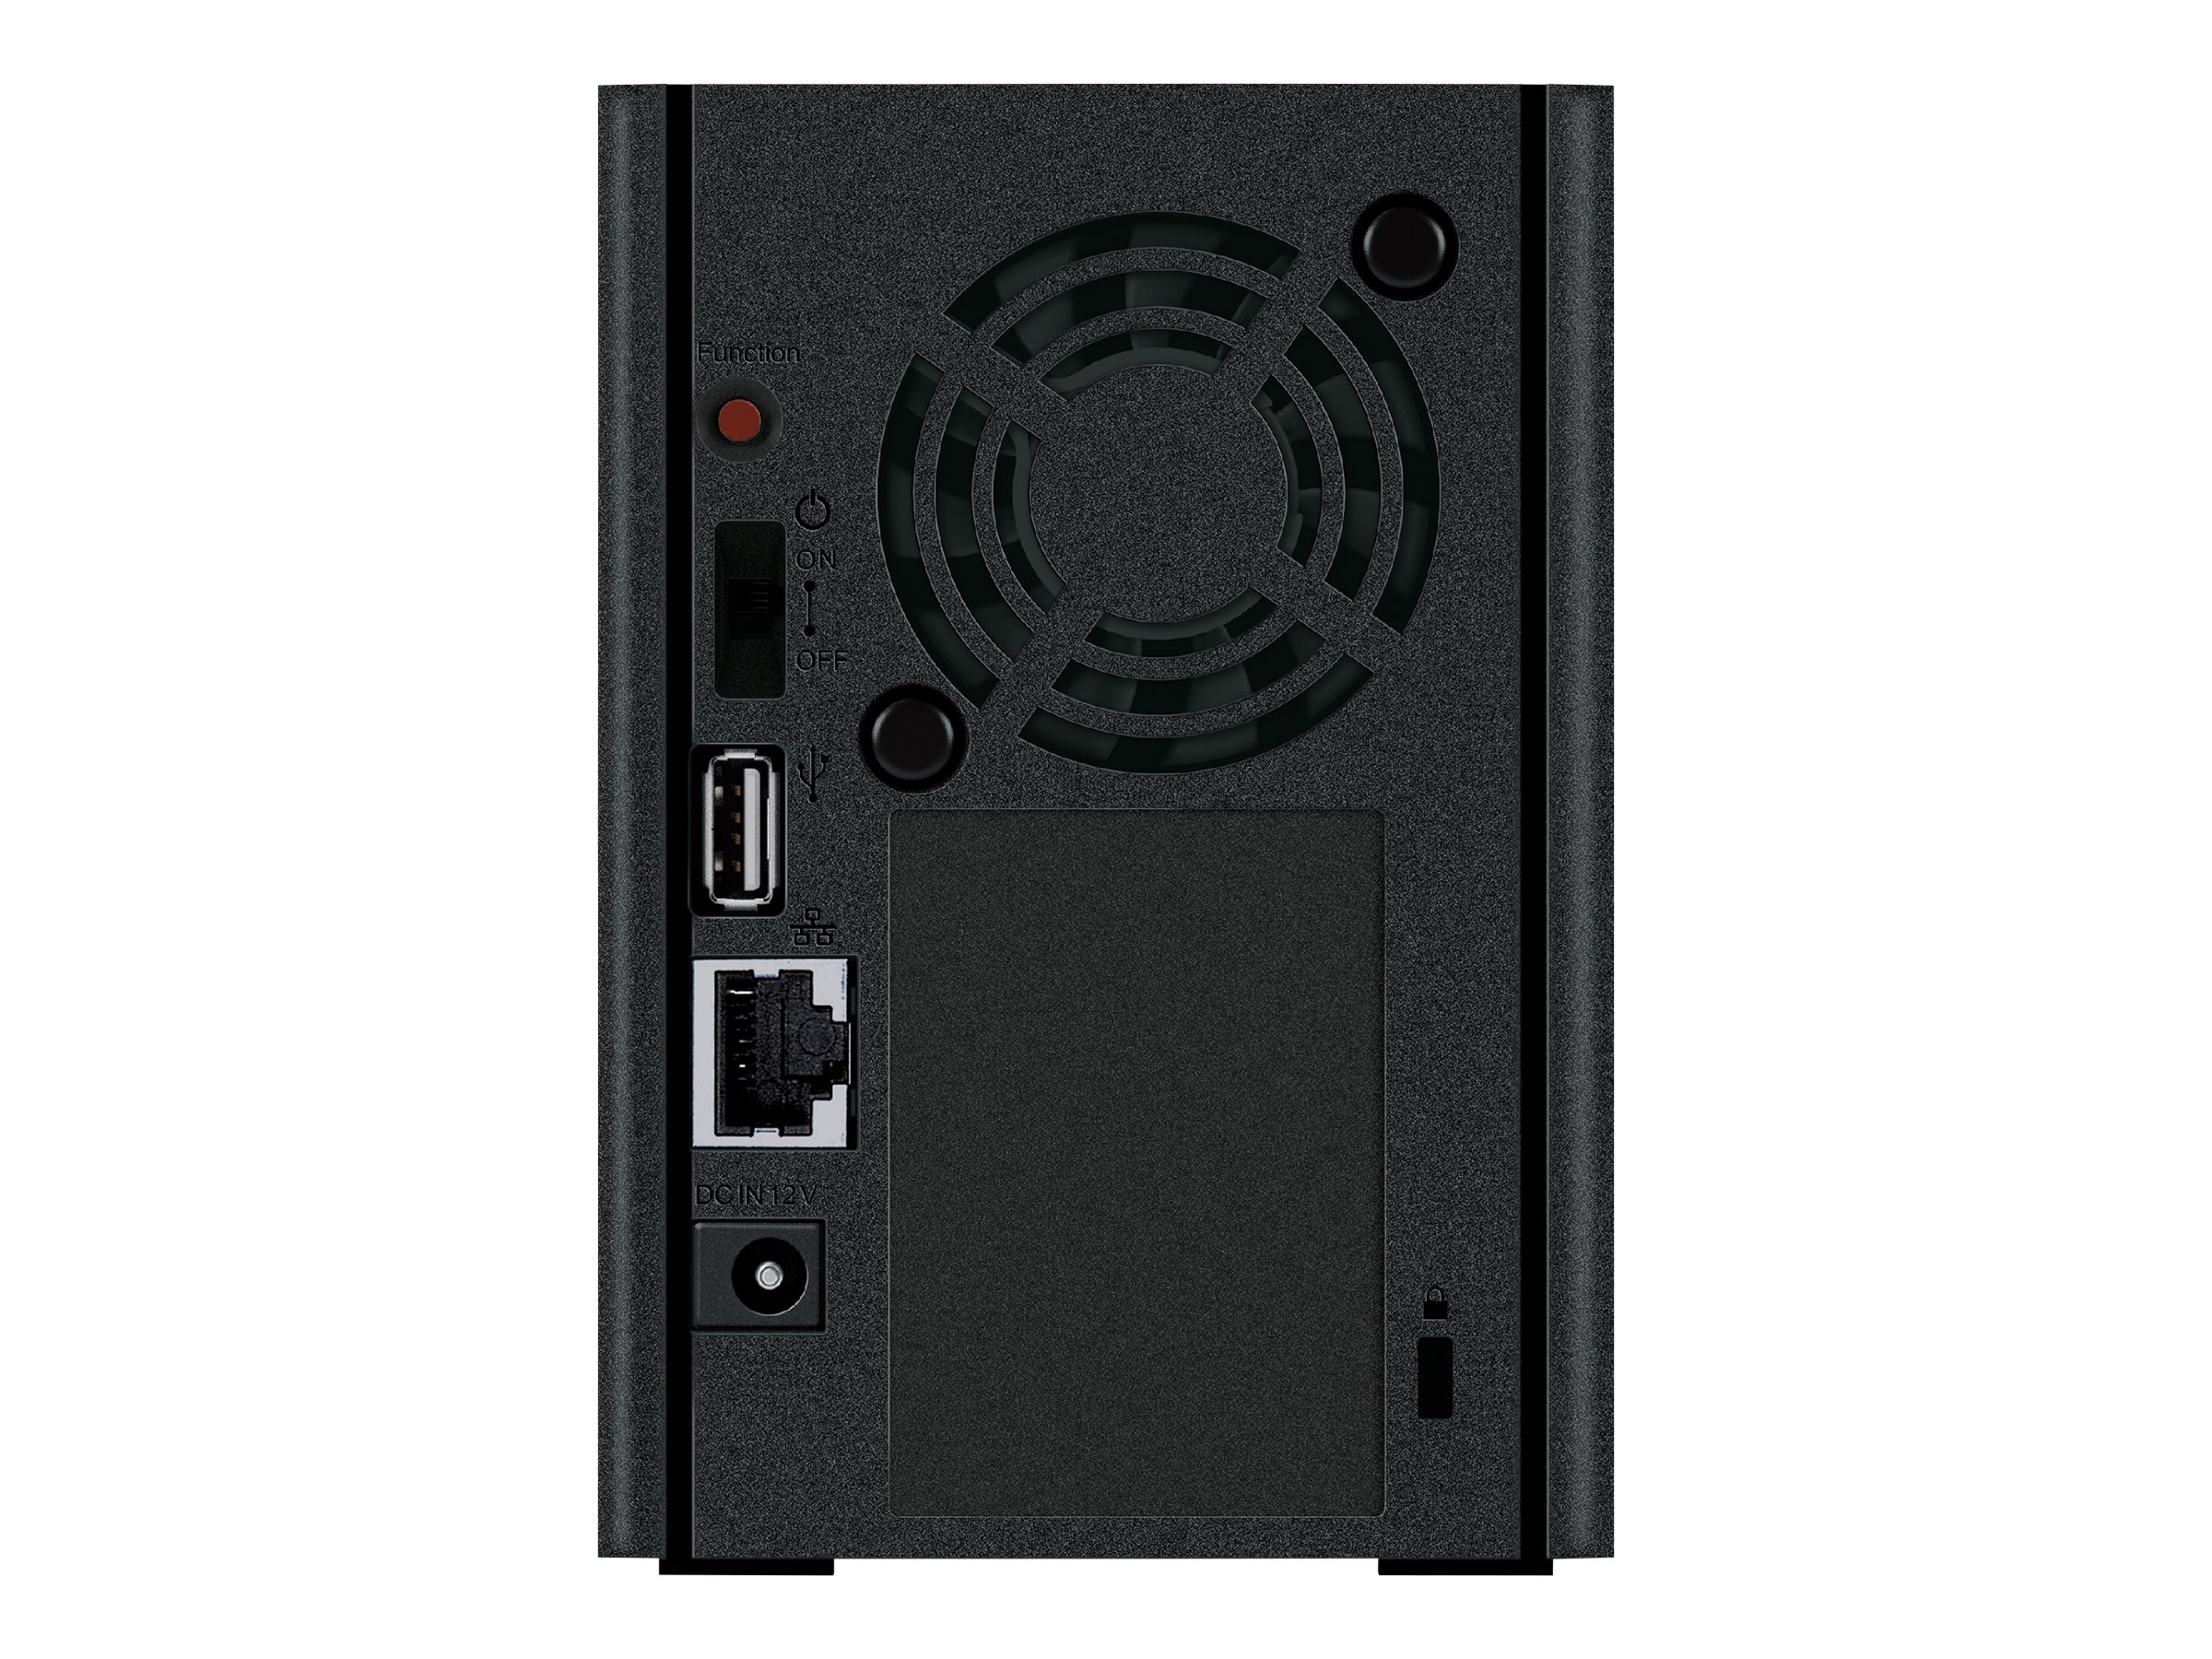 BUFFALO 4TB LinkStation 220 Dual Drive Personal Cloud Storage, LS220D0402